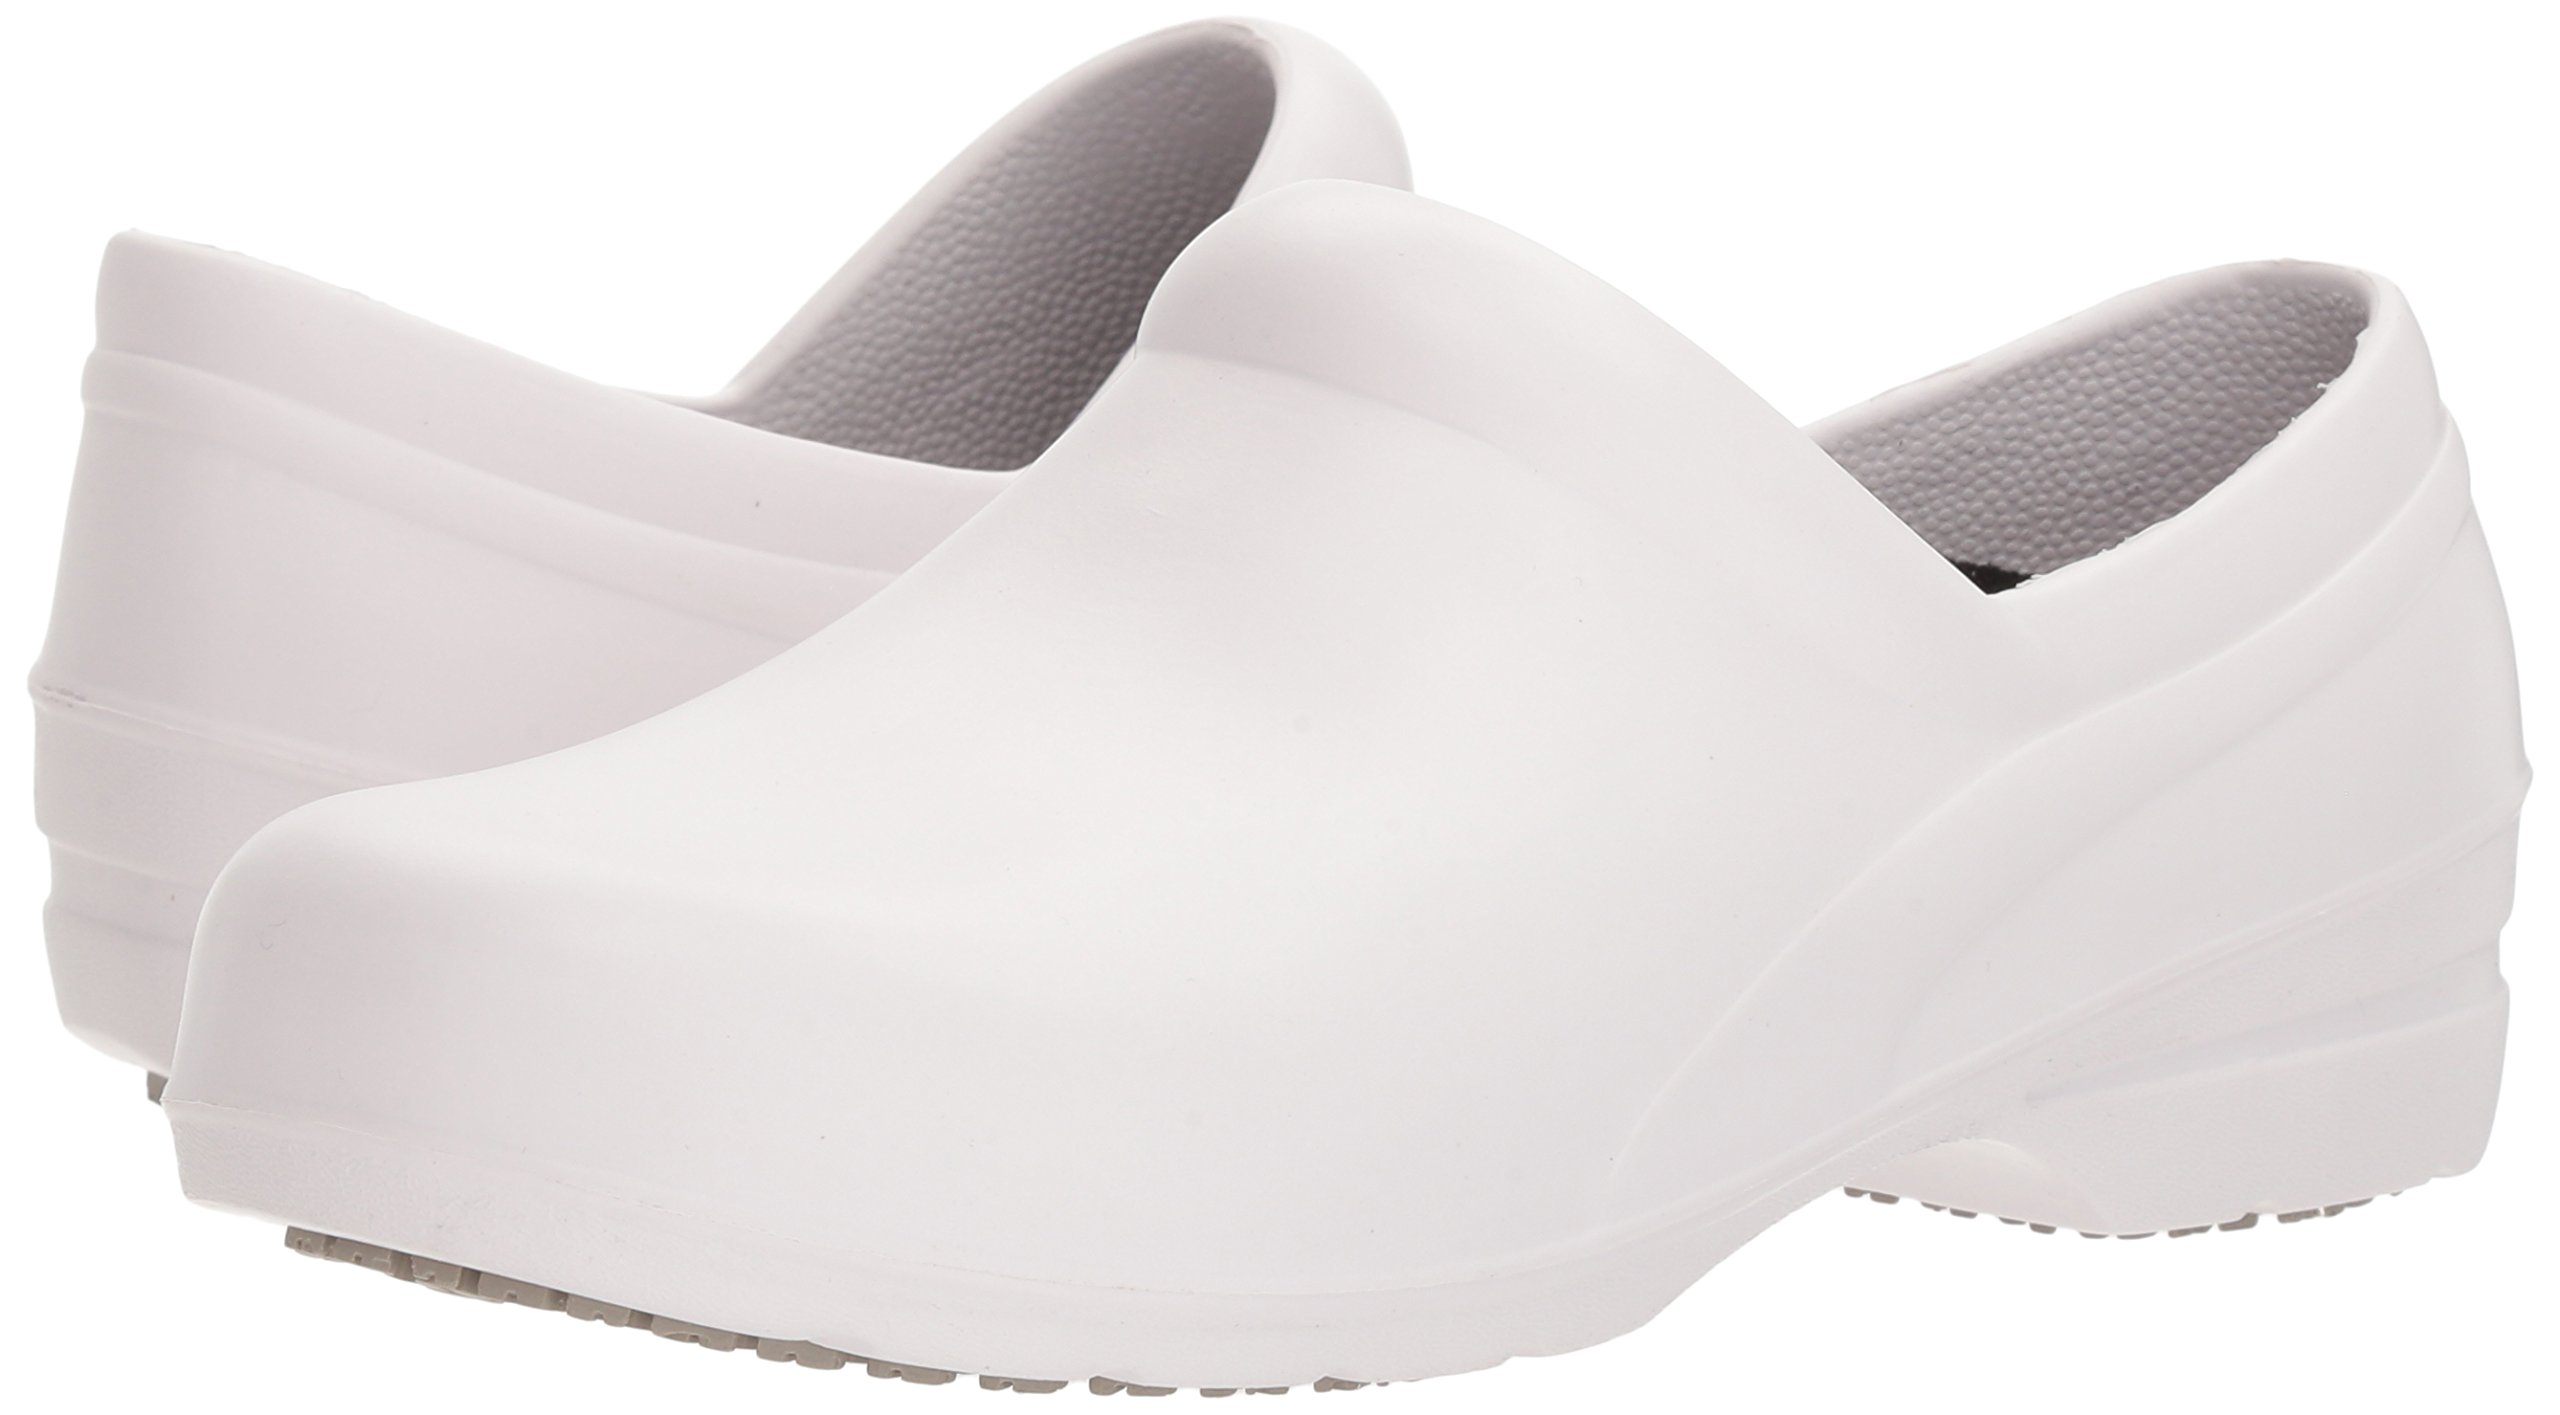 Easy Works Women's Kris Health Care Professional Shoe, White, 7 M US by Easy Works (Image #5)